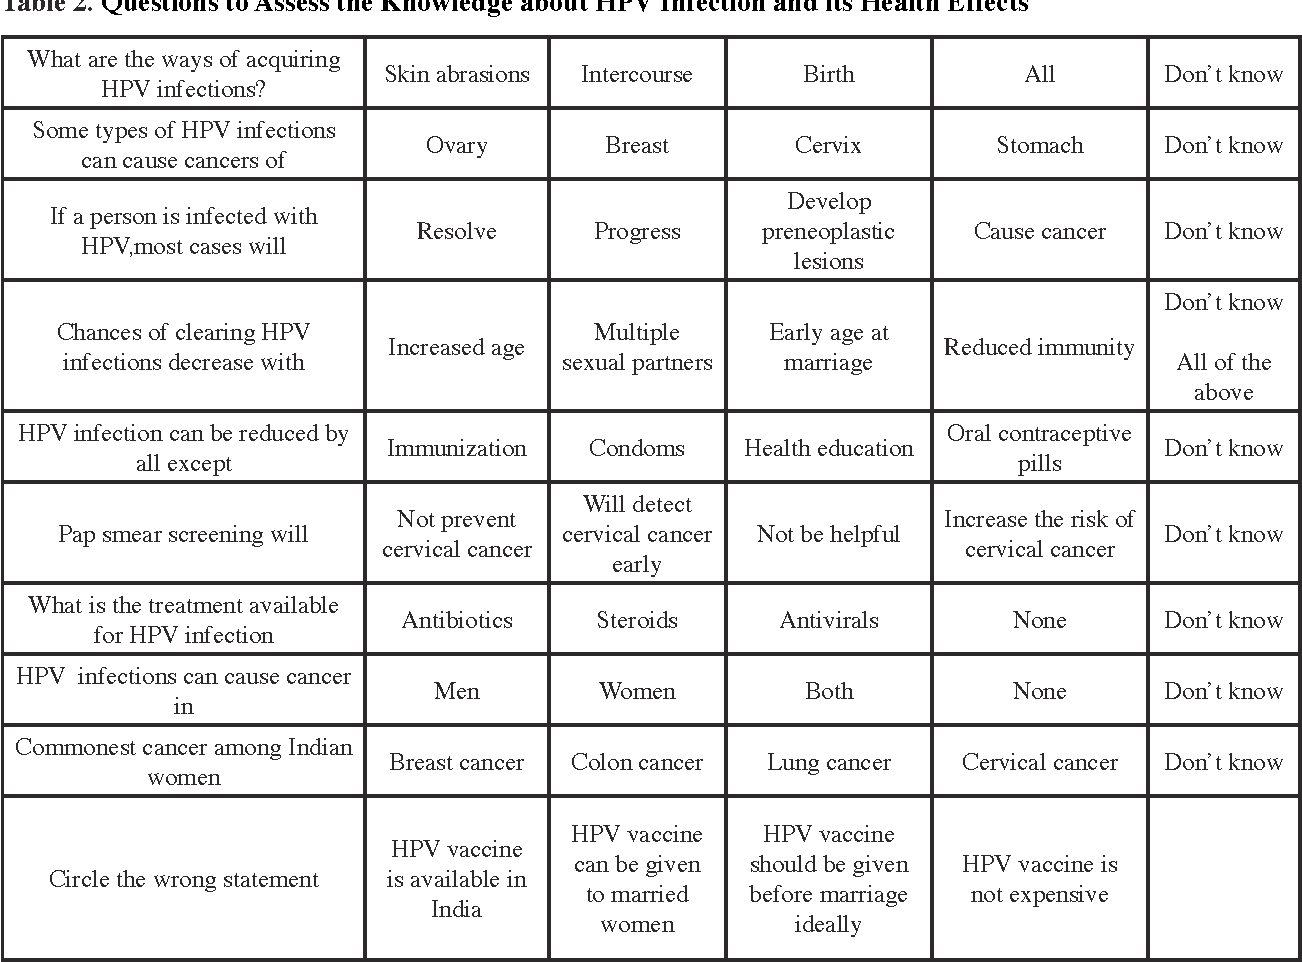 Table 2 From Hpv Infection Antibiotics Steroids Antivirals None Don T Know Hpv Infections Can Cause Cancer In Men Women Both None Don T Know Commonest Cancer Among Indian Women